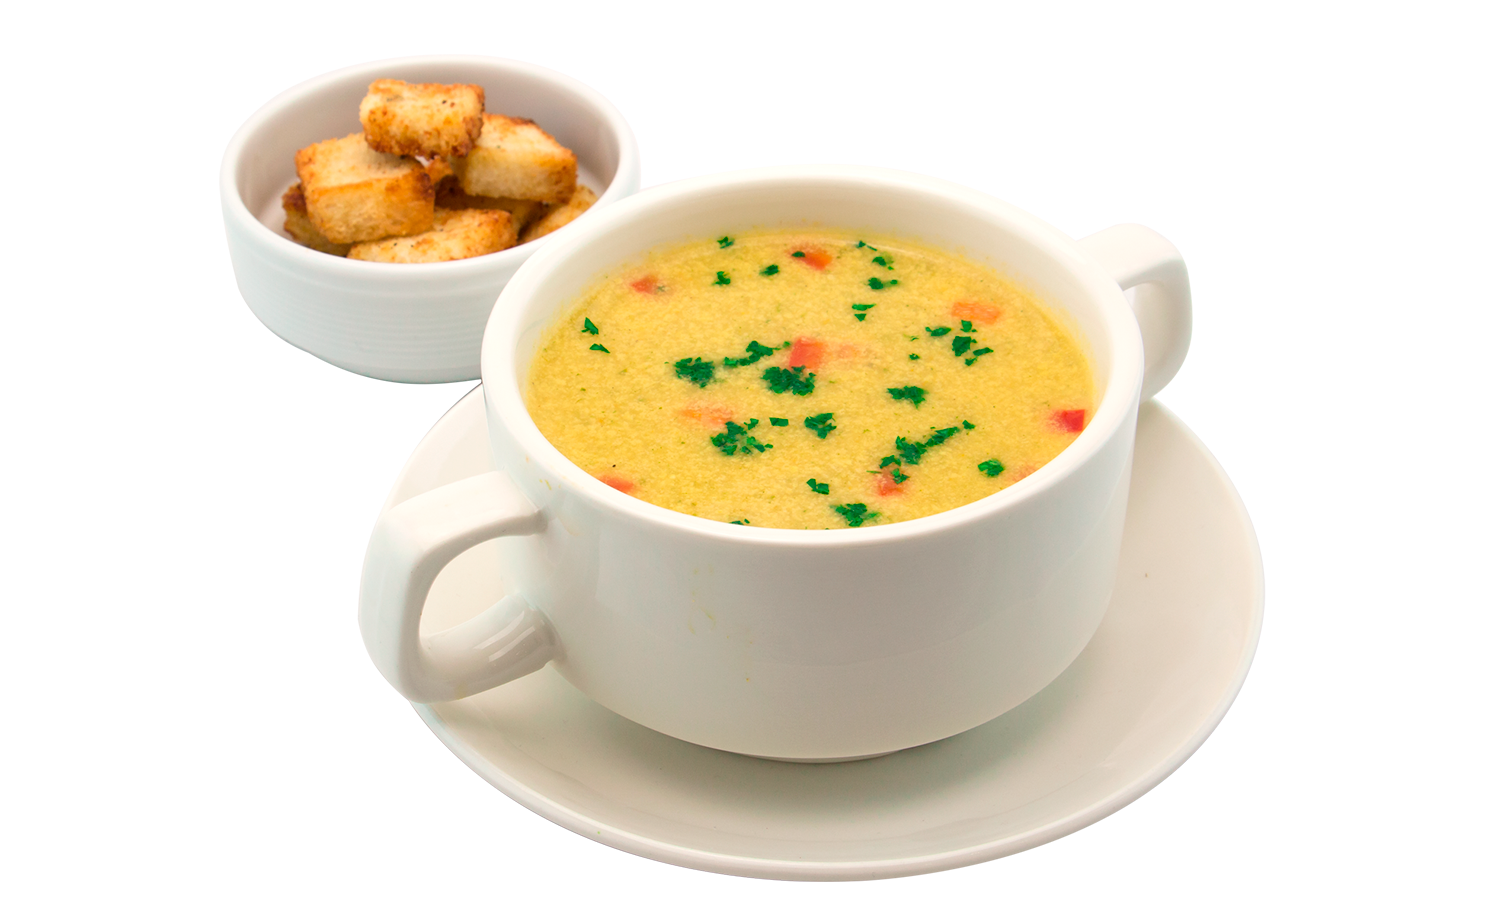 soup png images are download crazypngm crazy png images download #30322